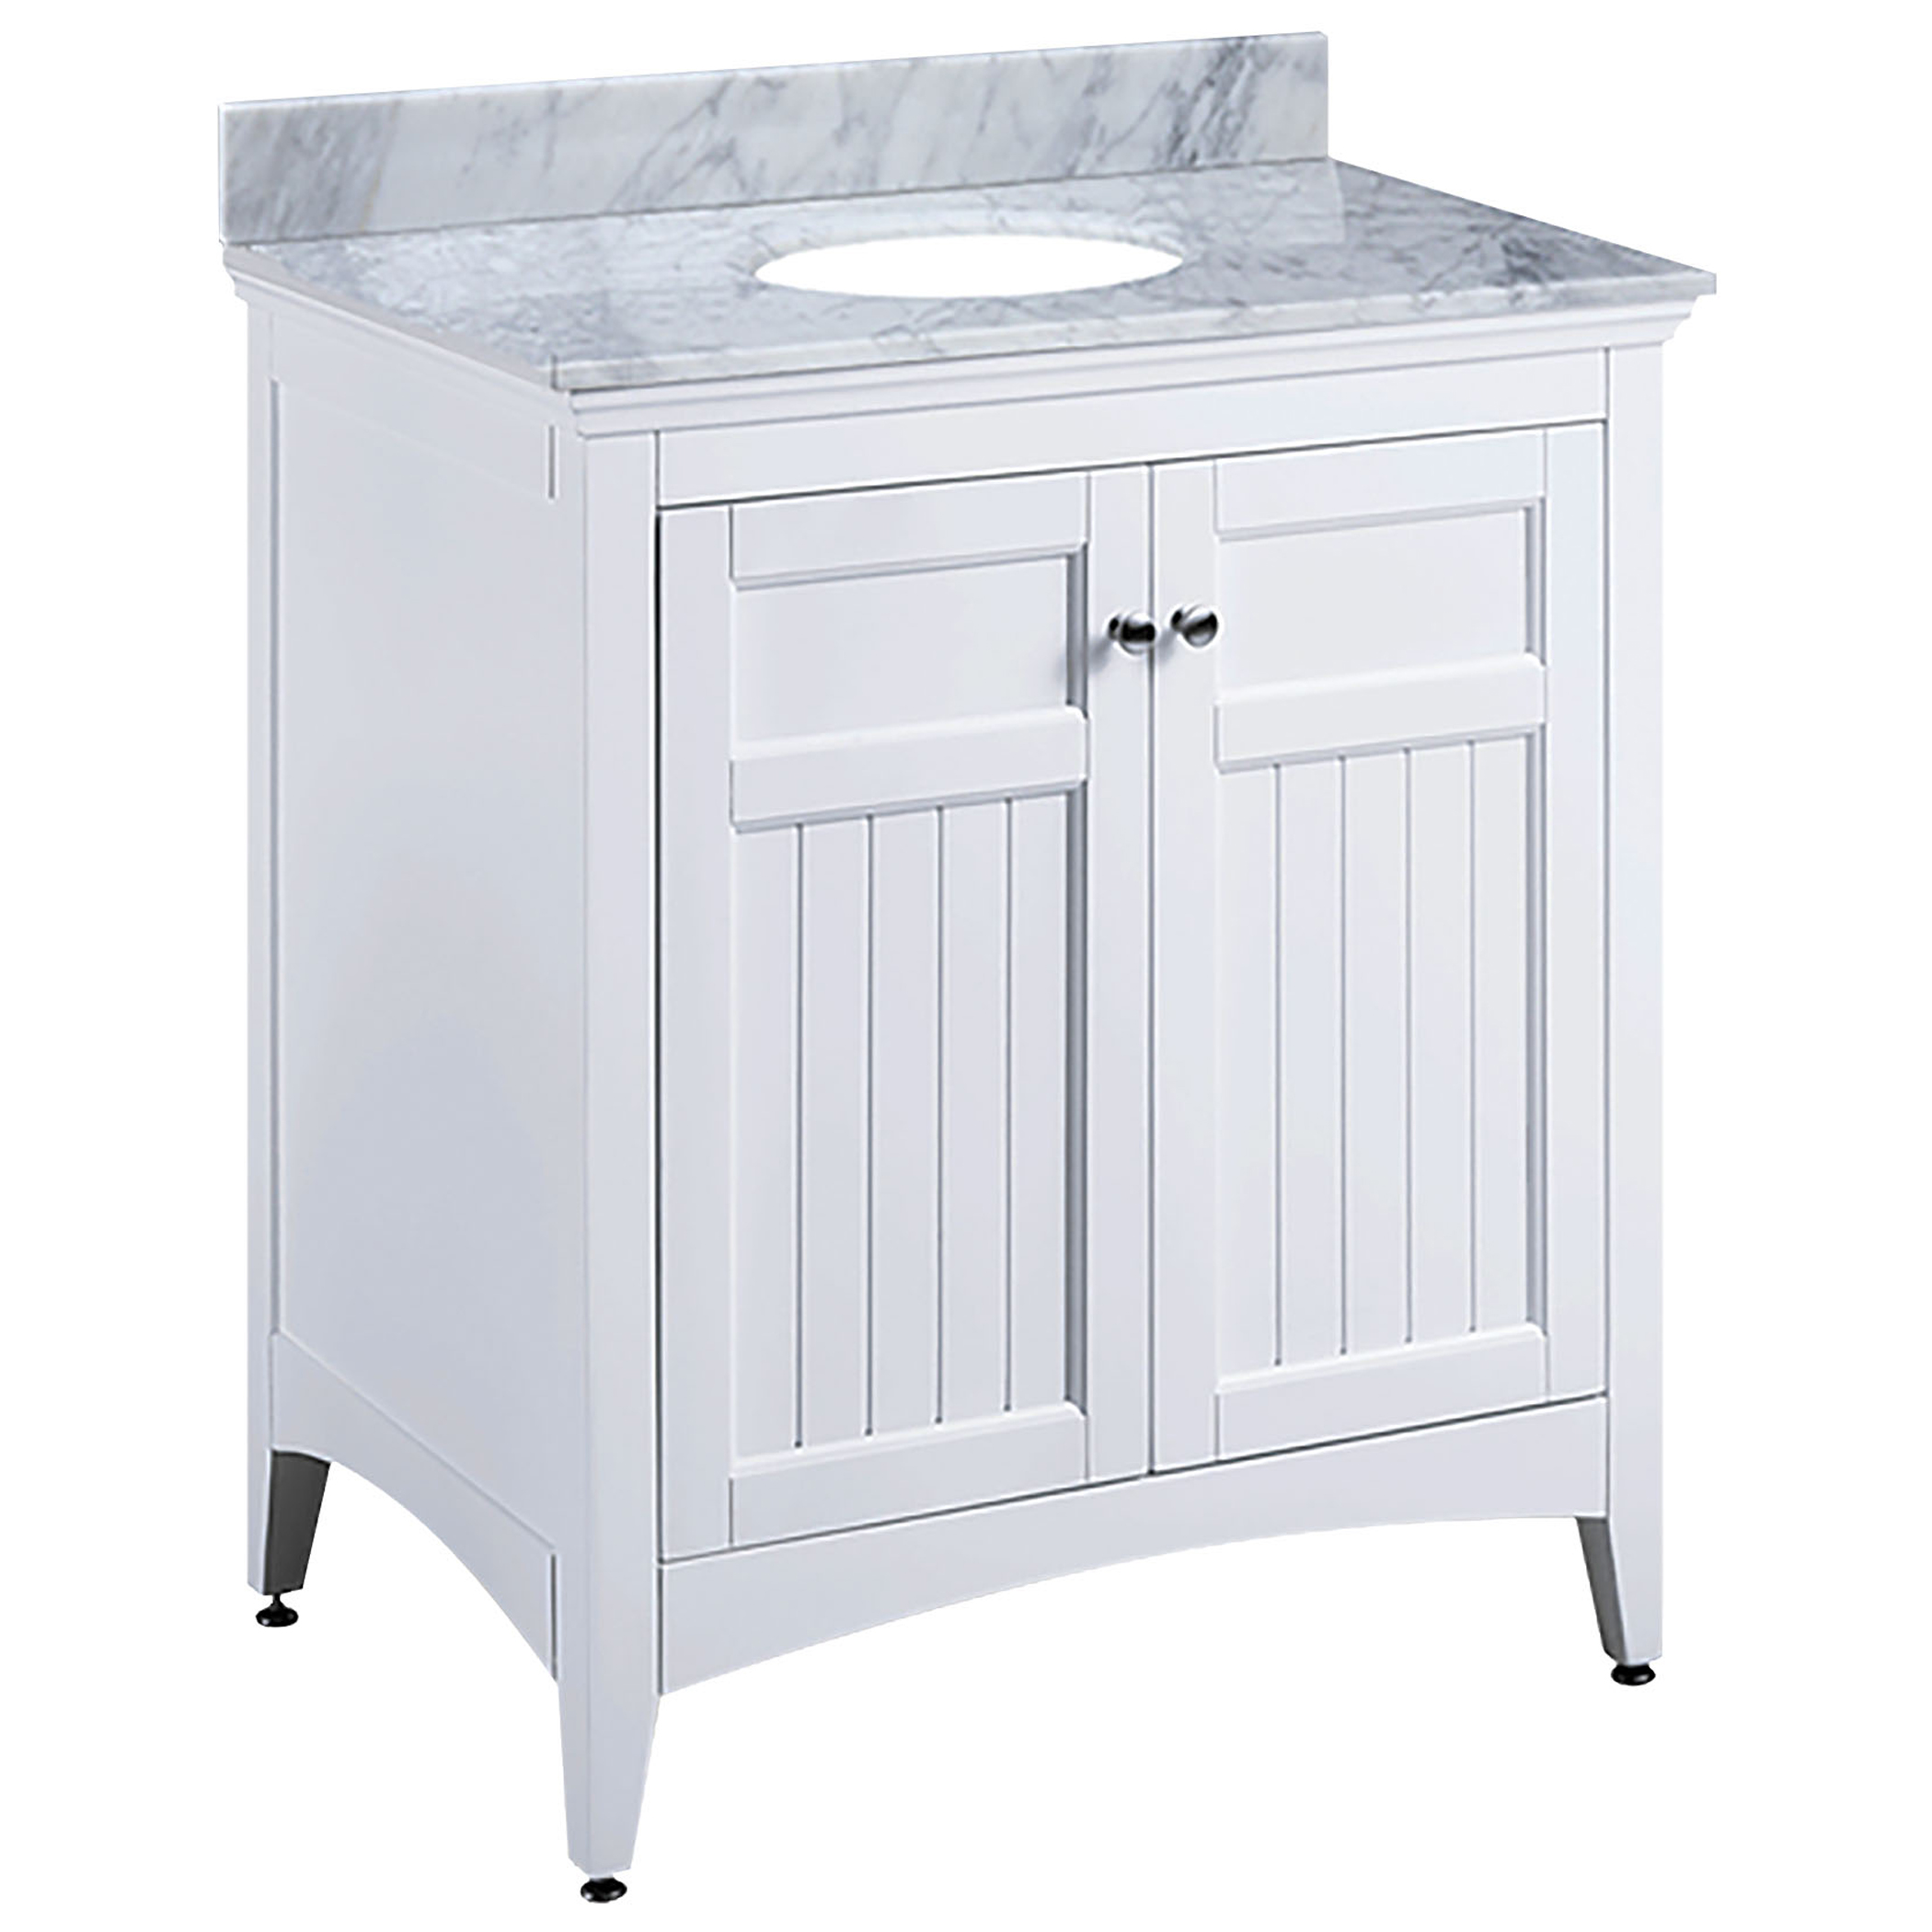 "30"" Transitional Bathroom Vanity - White Finish with Counter Top and Mirror Options"